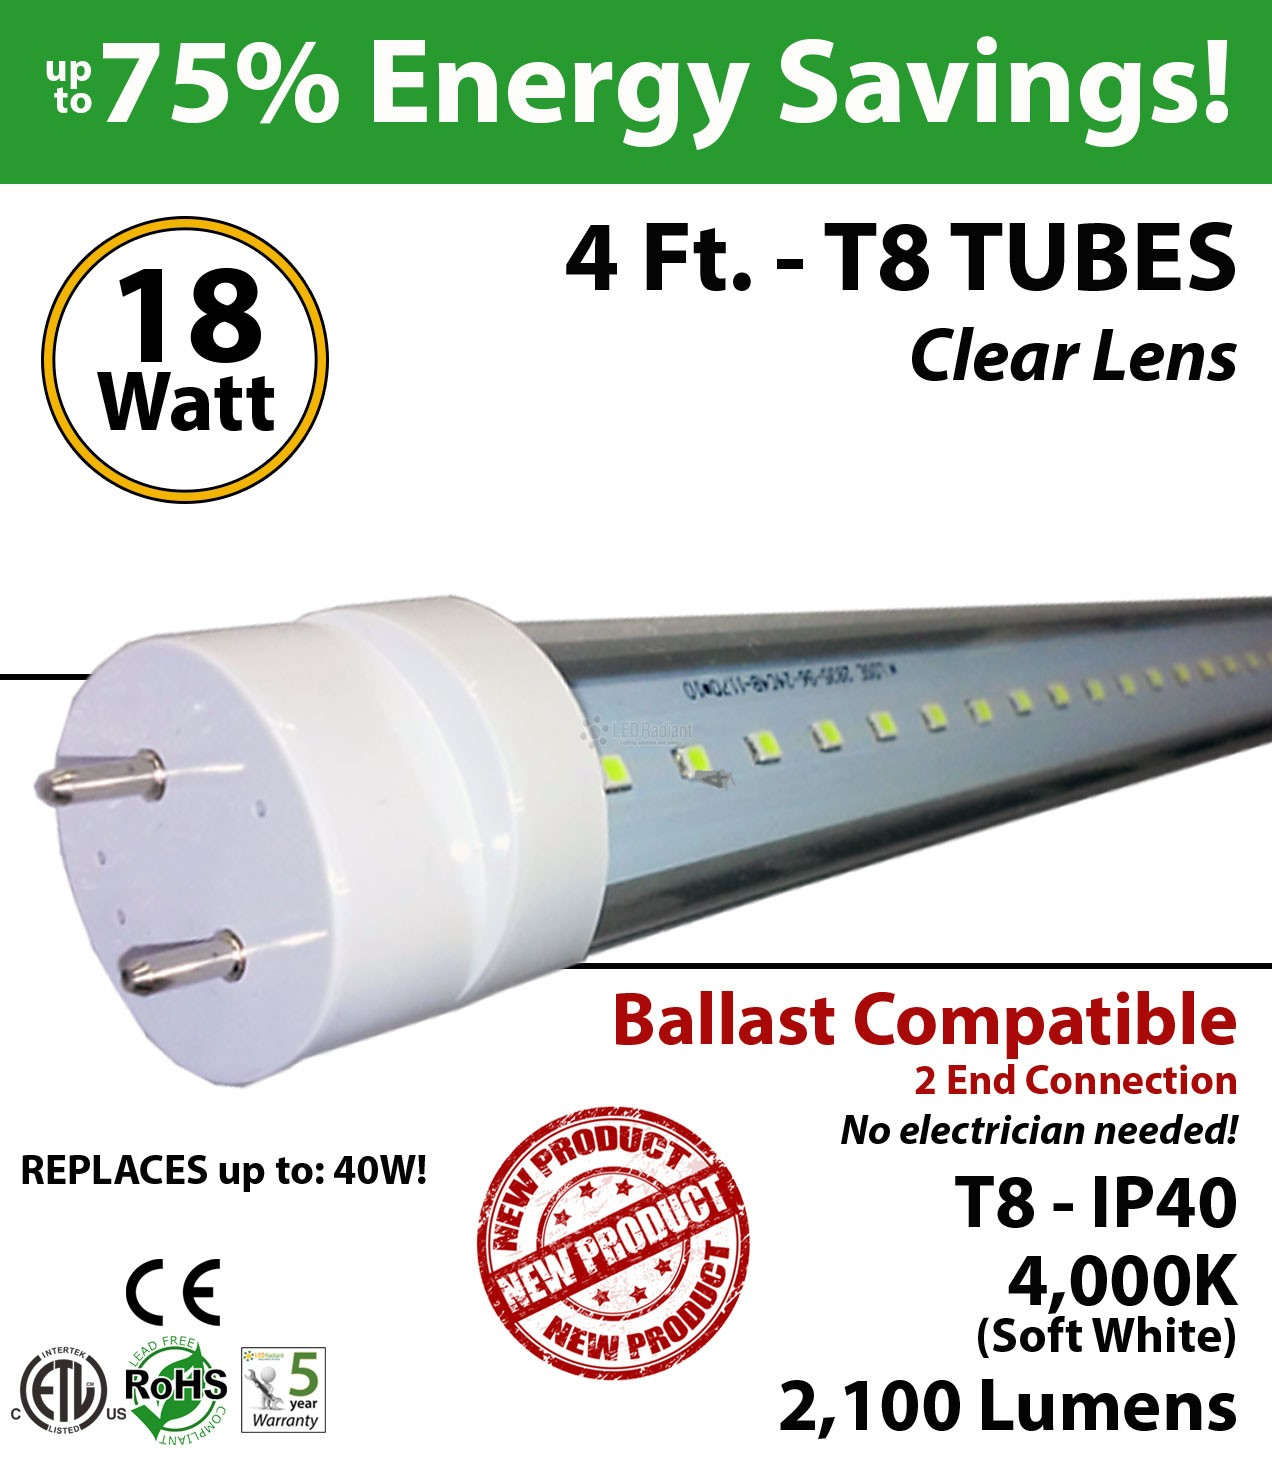 tube lighting t8 4ft t4cbac182104de_3 18w 4ft led t8 tube light fluorescent replacement 4000k ledradiant  at love-stories.co